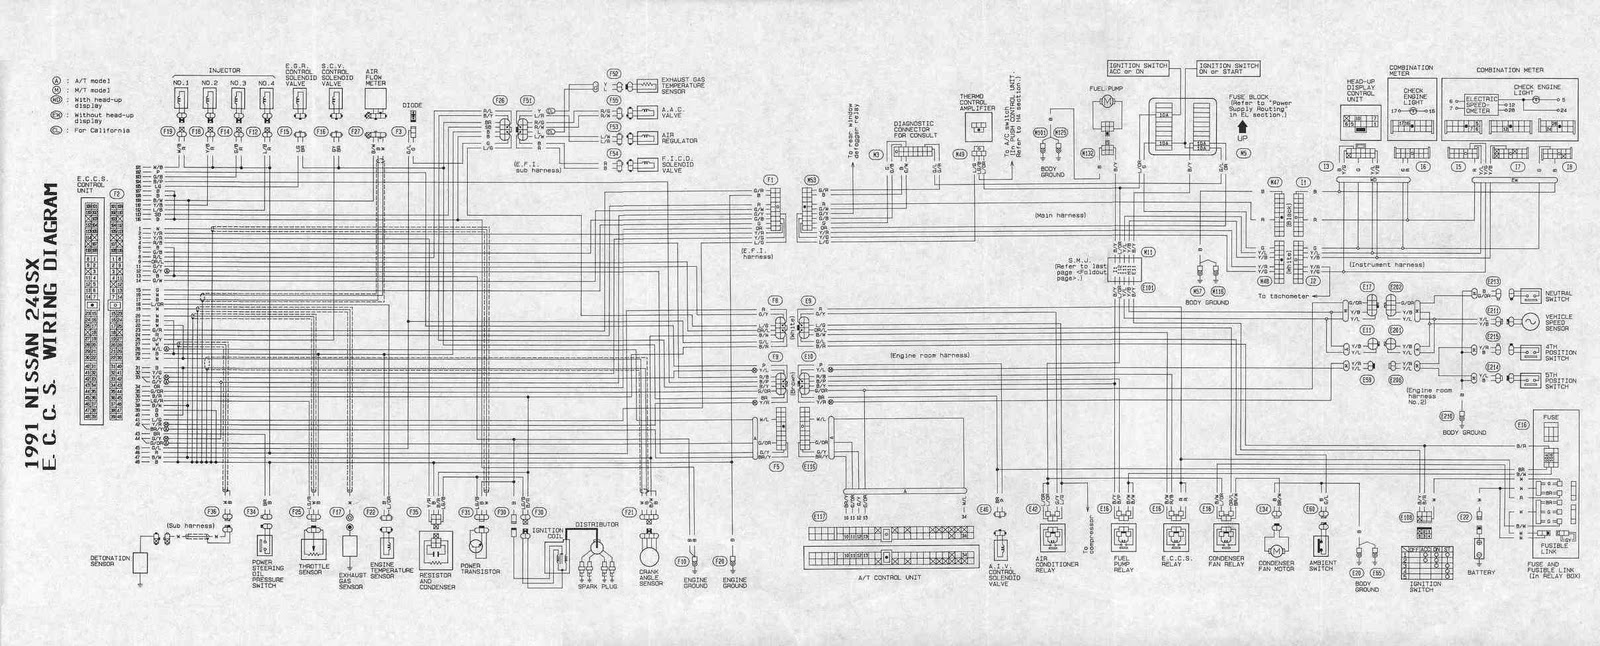 1962 cadillac wiring diagram nissan 240sx 1991 eccs wiring diagram all about wiring 1962 f100 wiring diagram #4